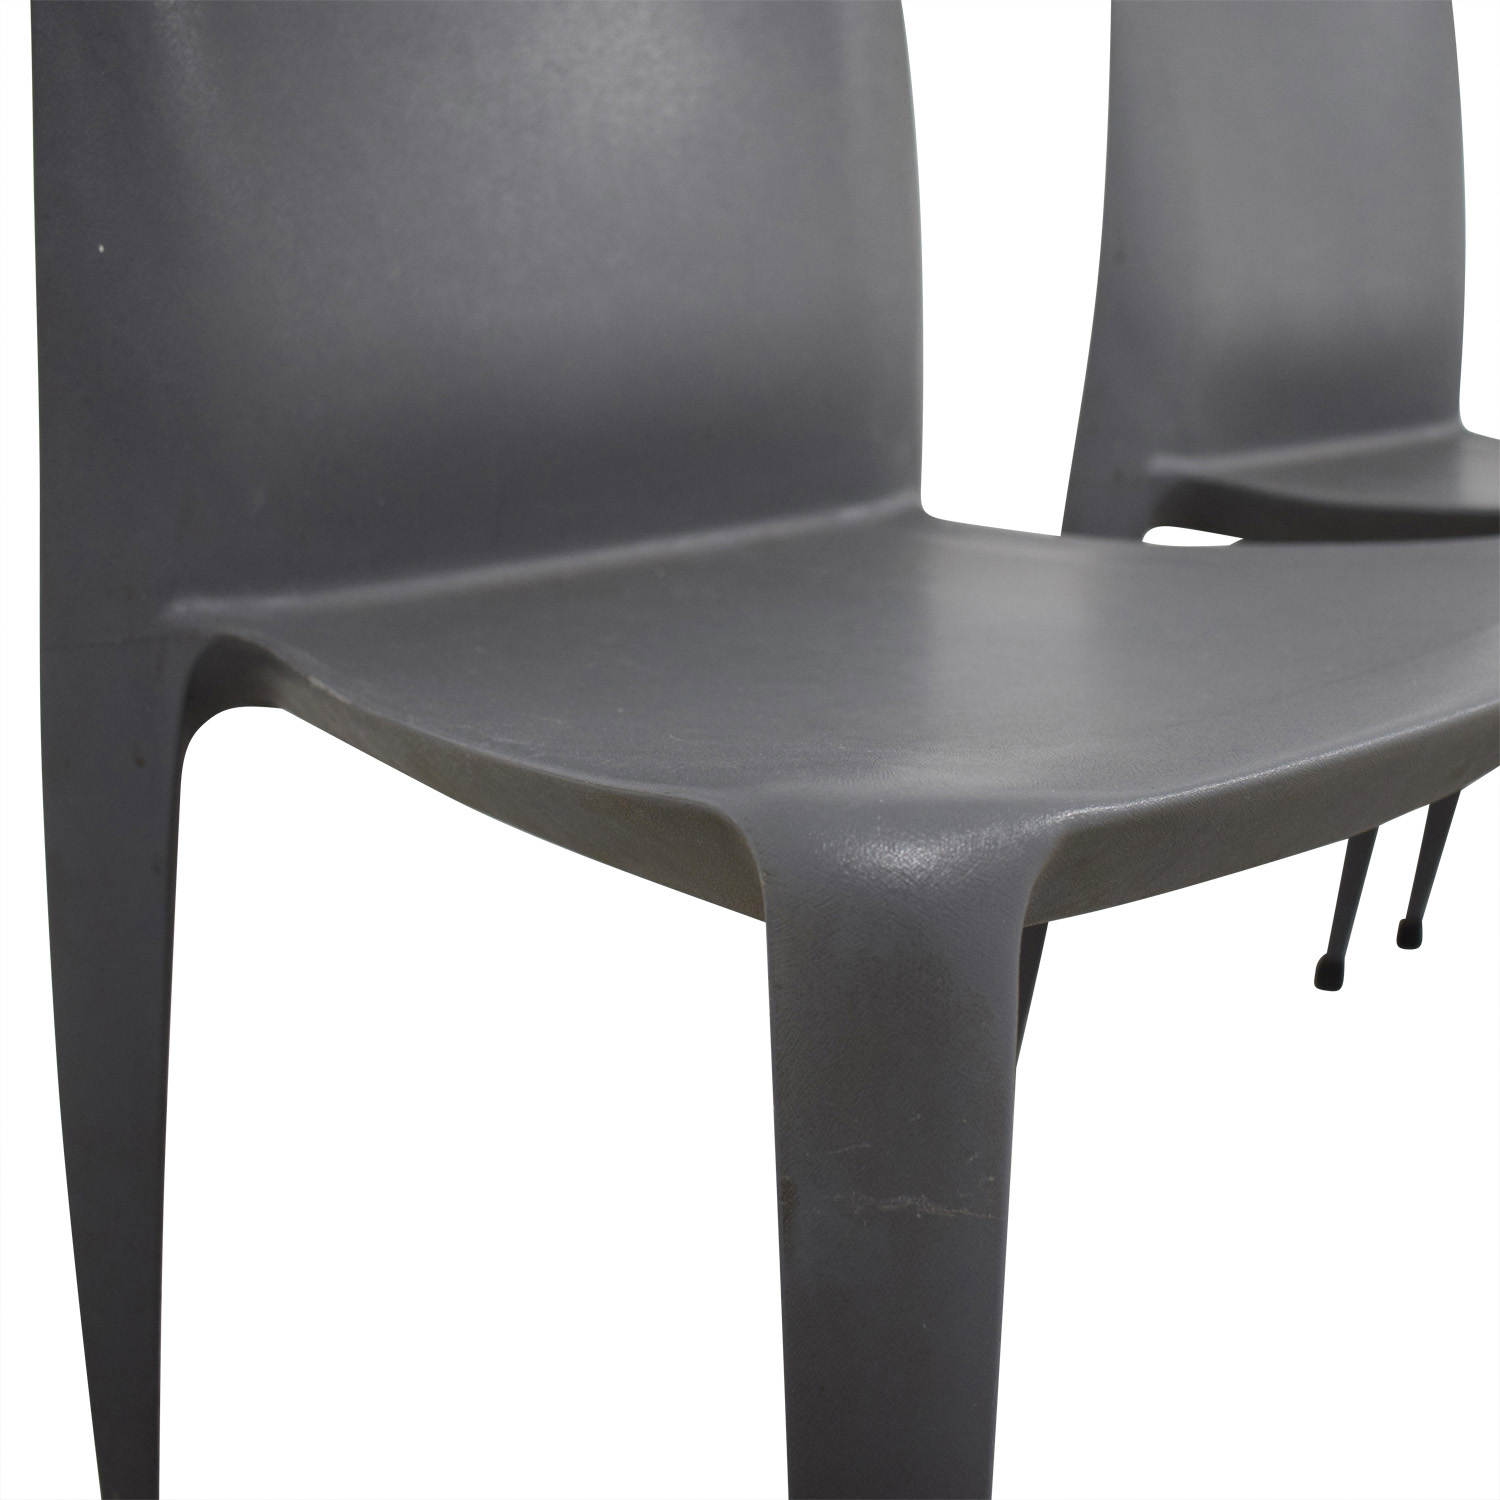 Room & Board Room & Board Bellini Chairs discount